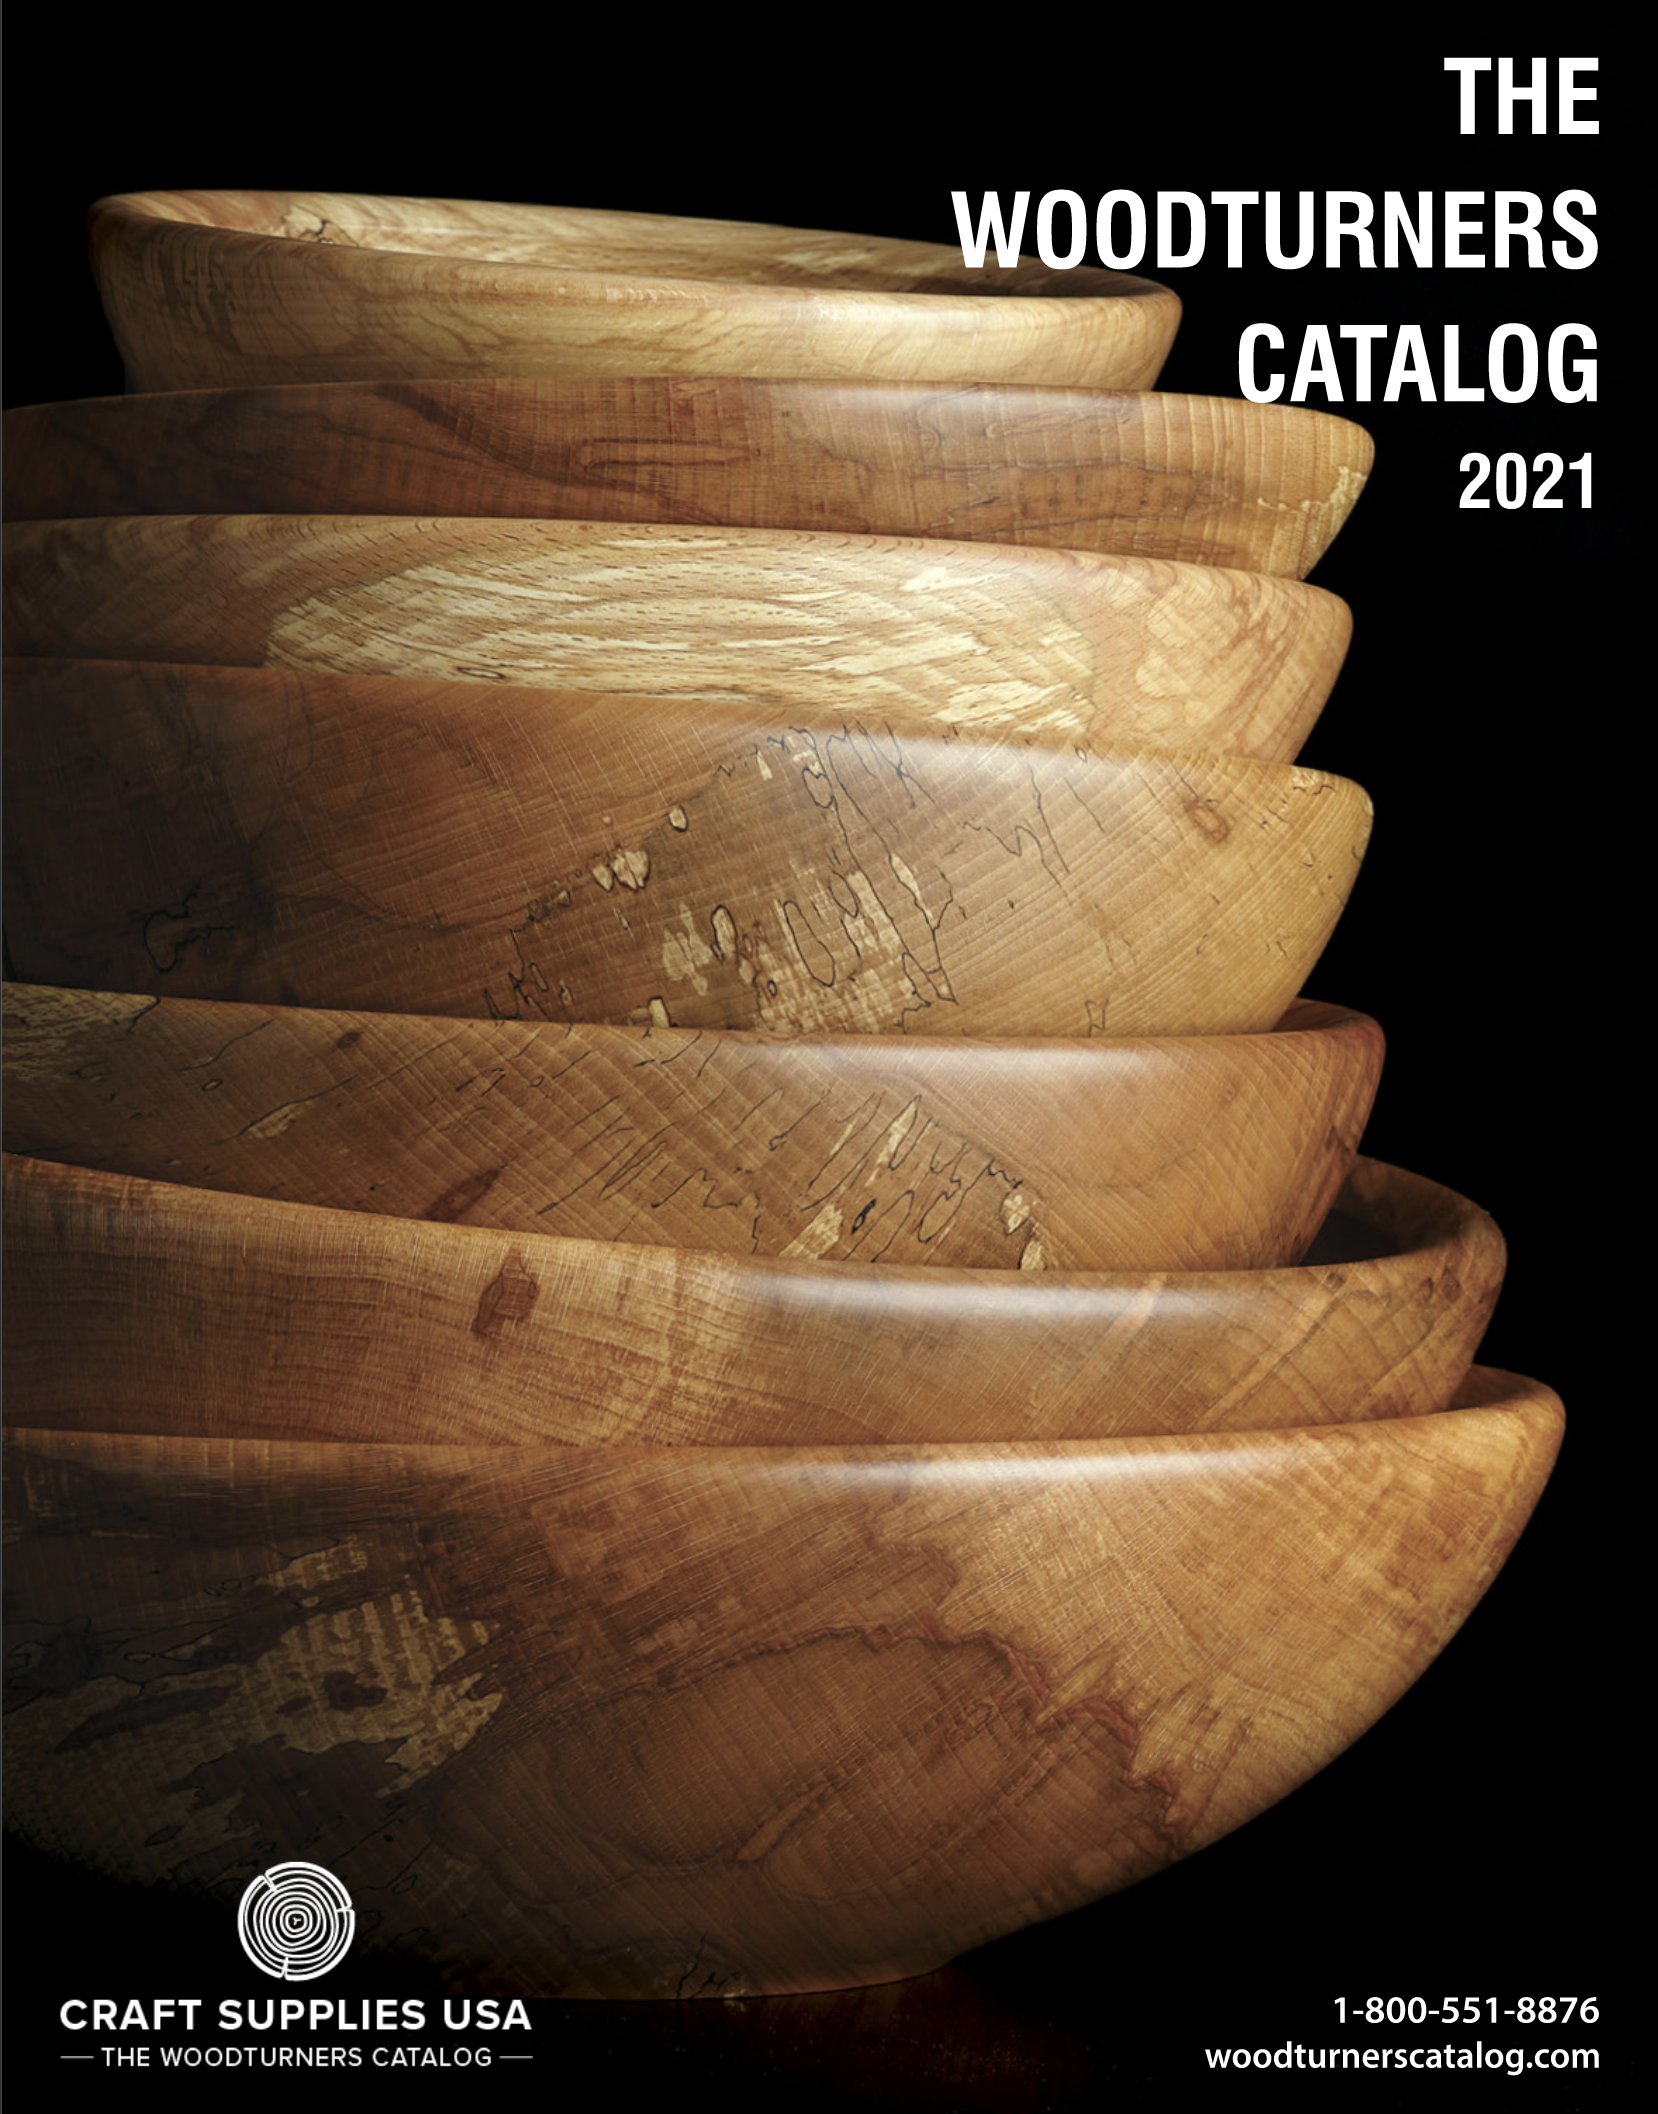 Cover of Crafts Supplies USA 'Woodturners Catalog'